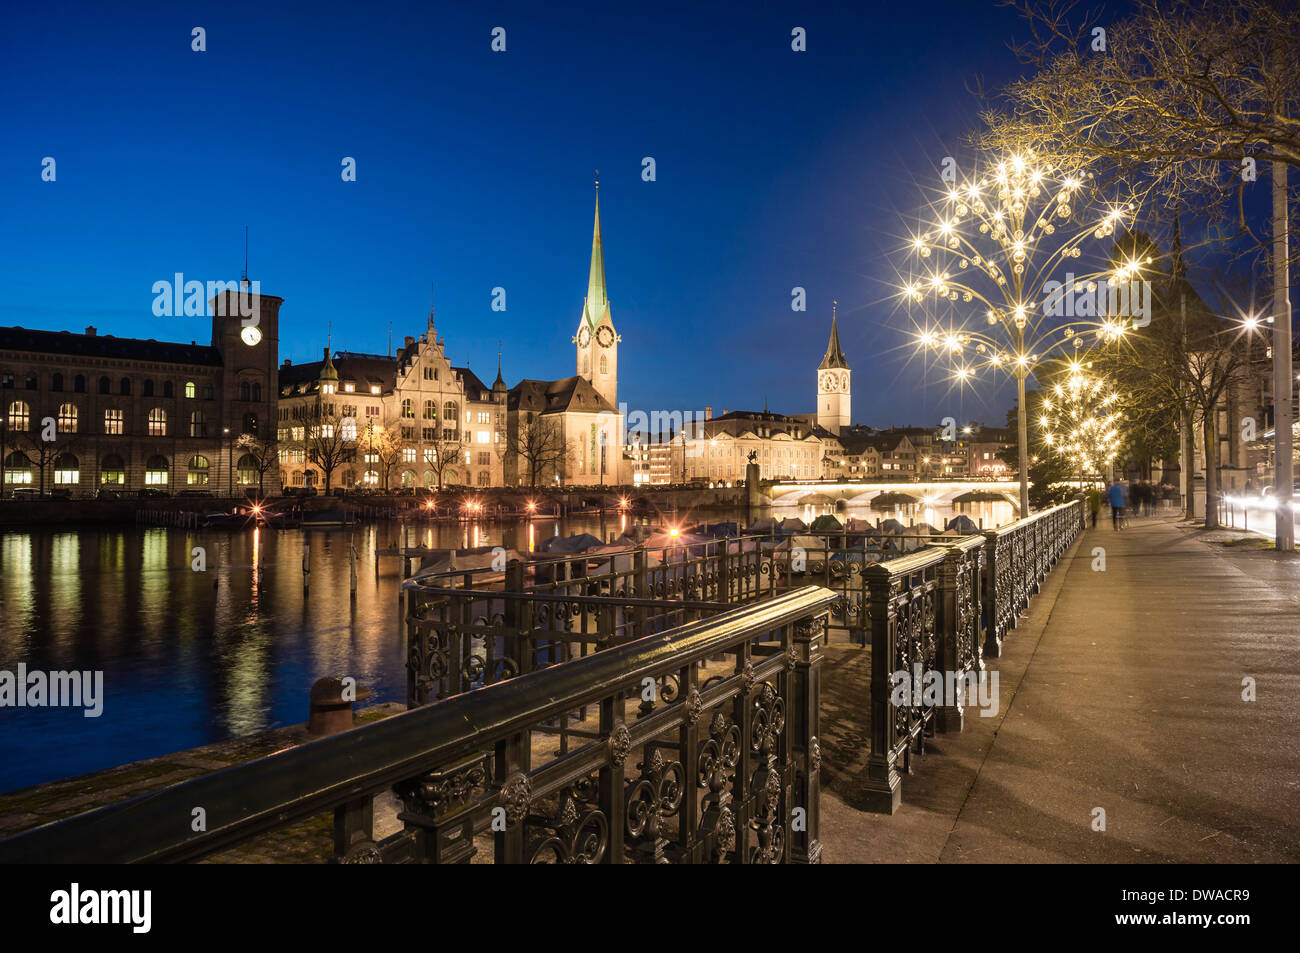 River Limmat, Town Hall, Fraumunster, St. Peters Church, Christmas Illumination, Zurich, Switzerland - Stock Image